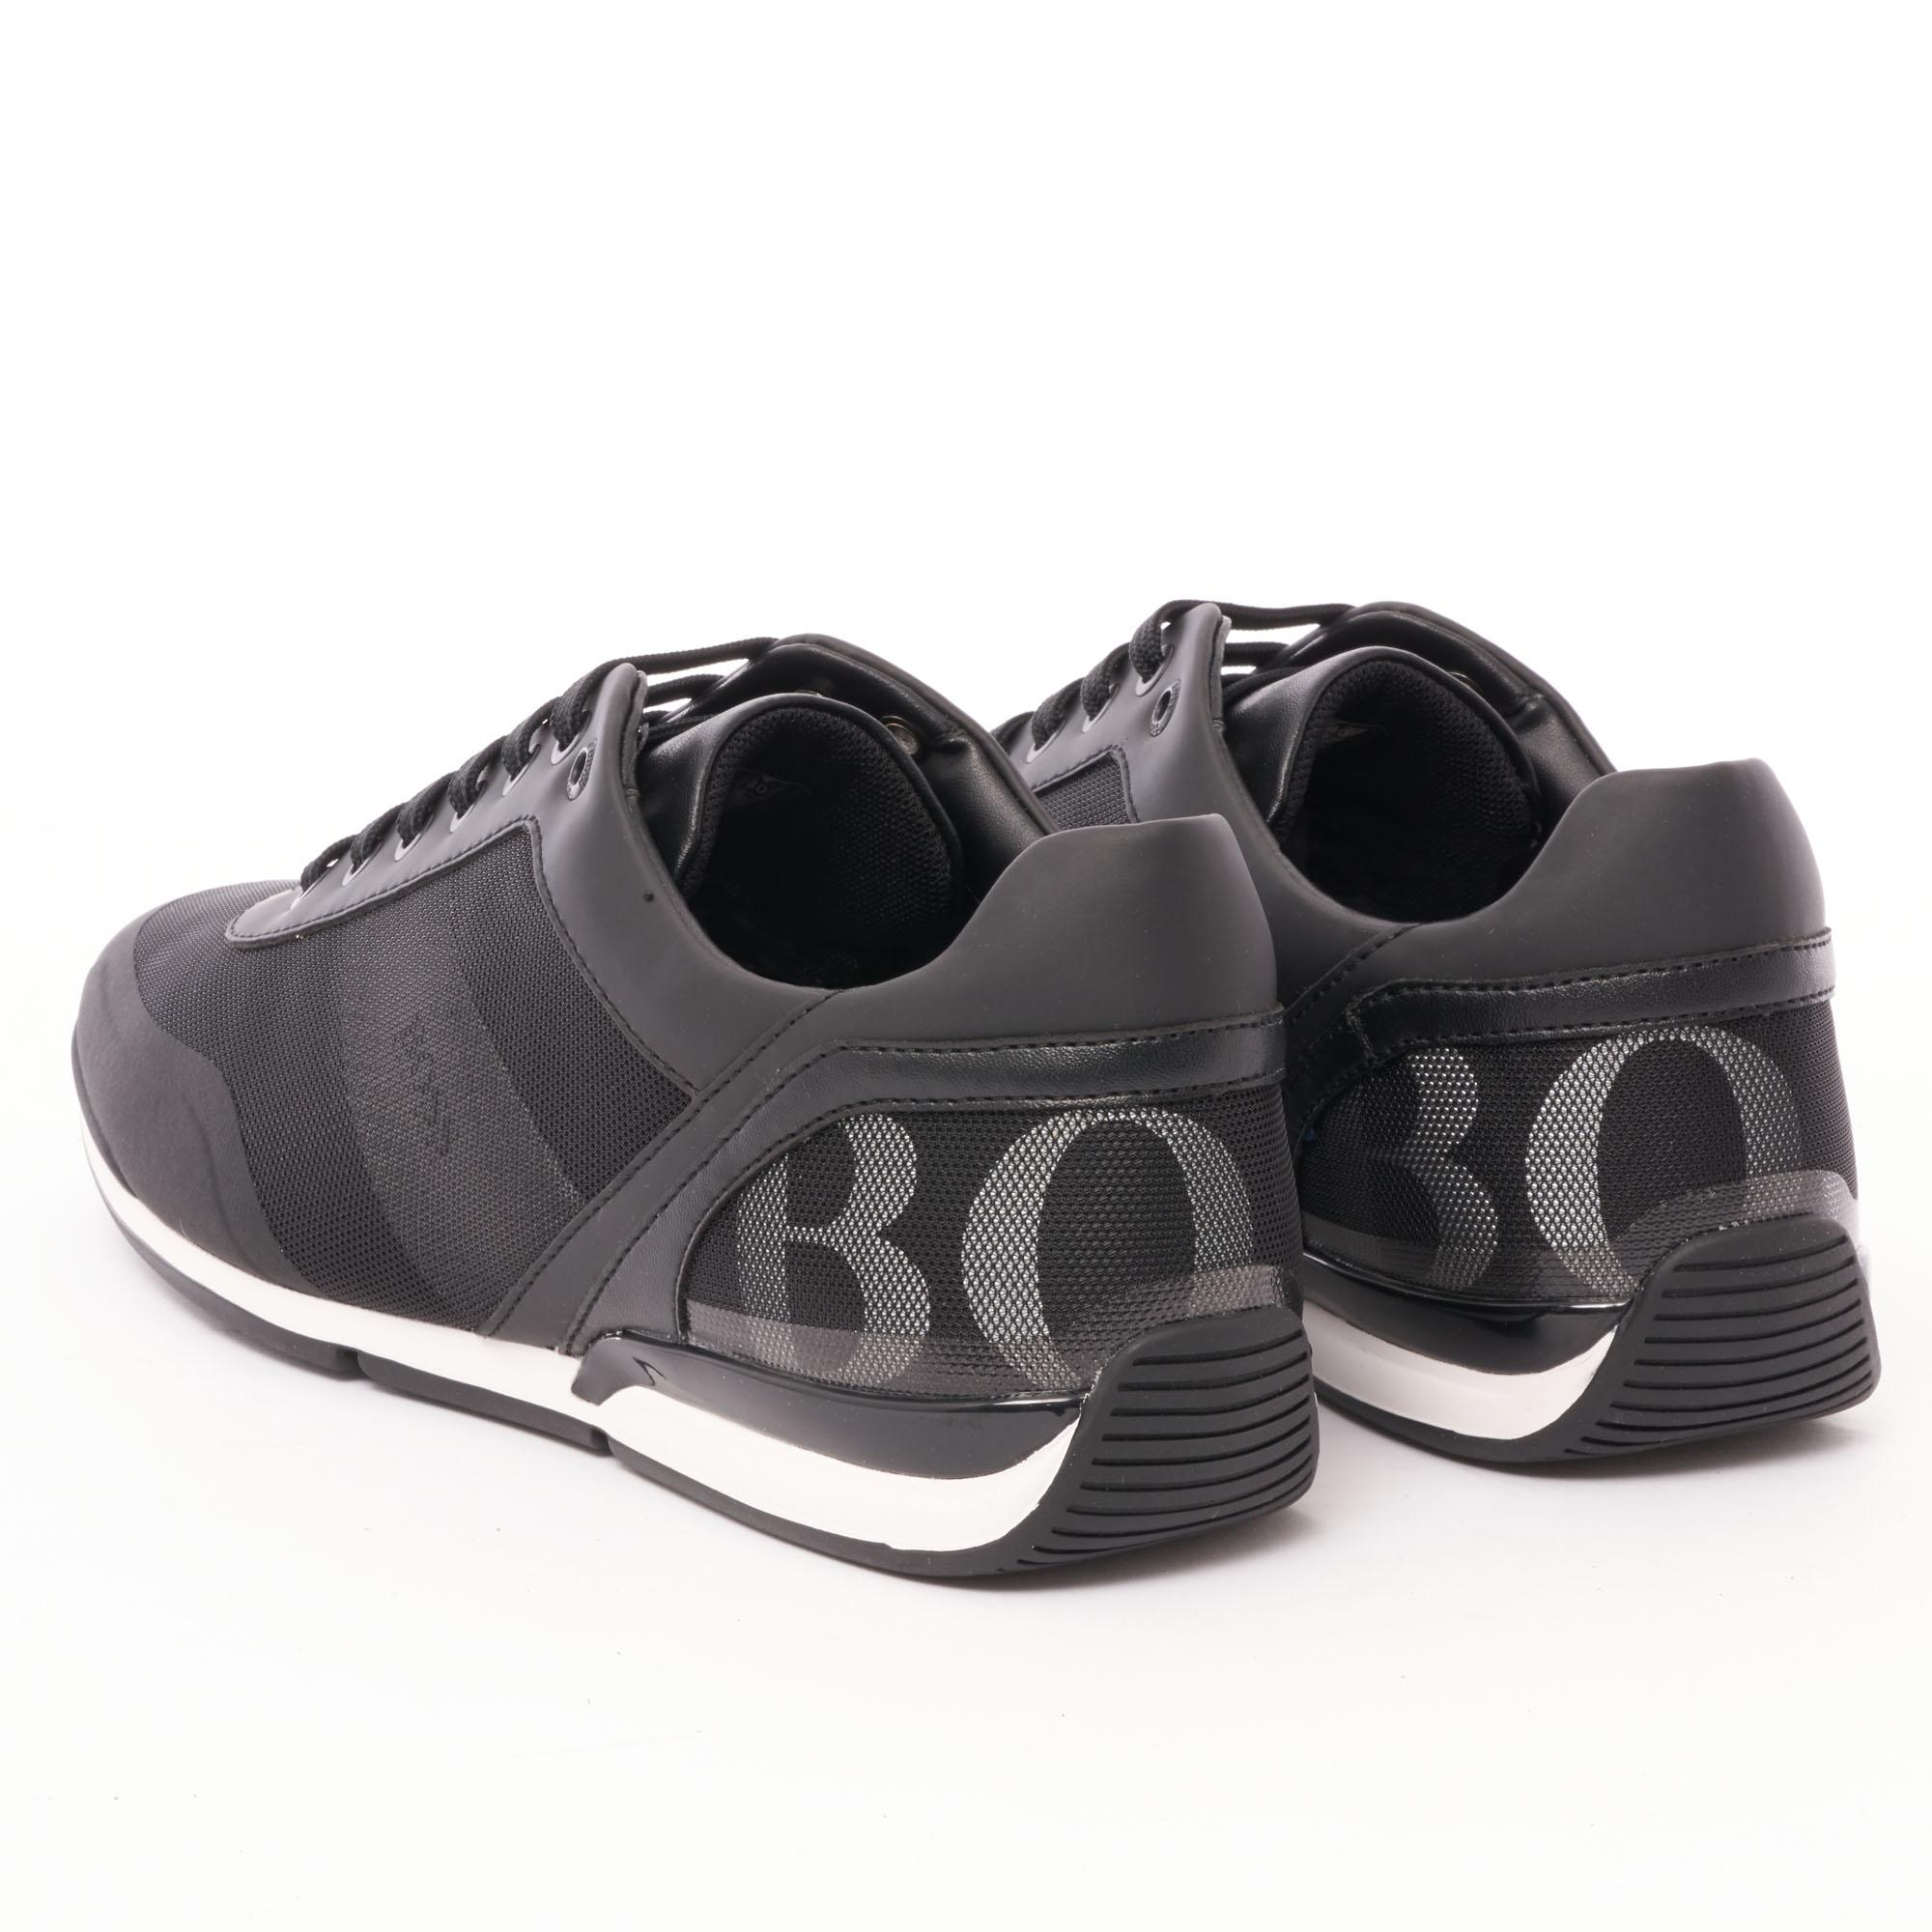 918431adbf BOSS - Saturn Low Act 3 Sneakers - Black for Men - Lyst. View fullscreen